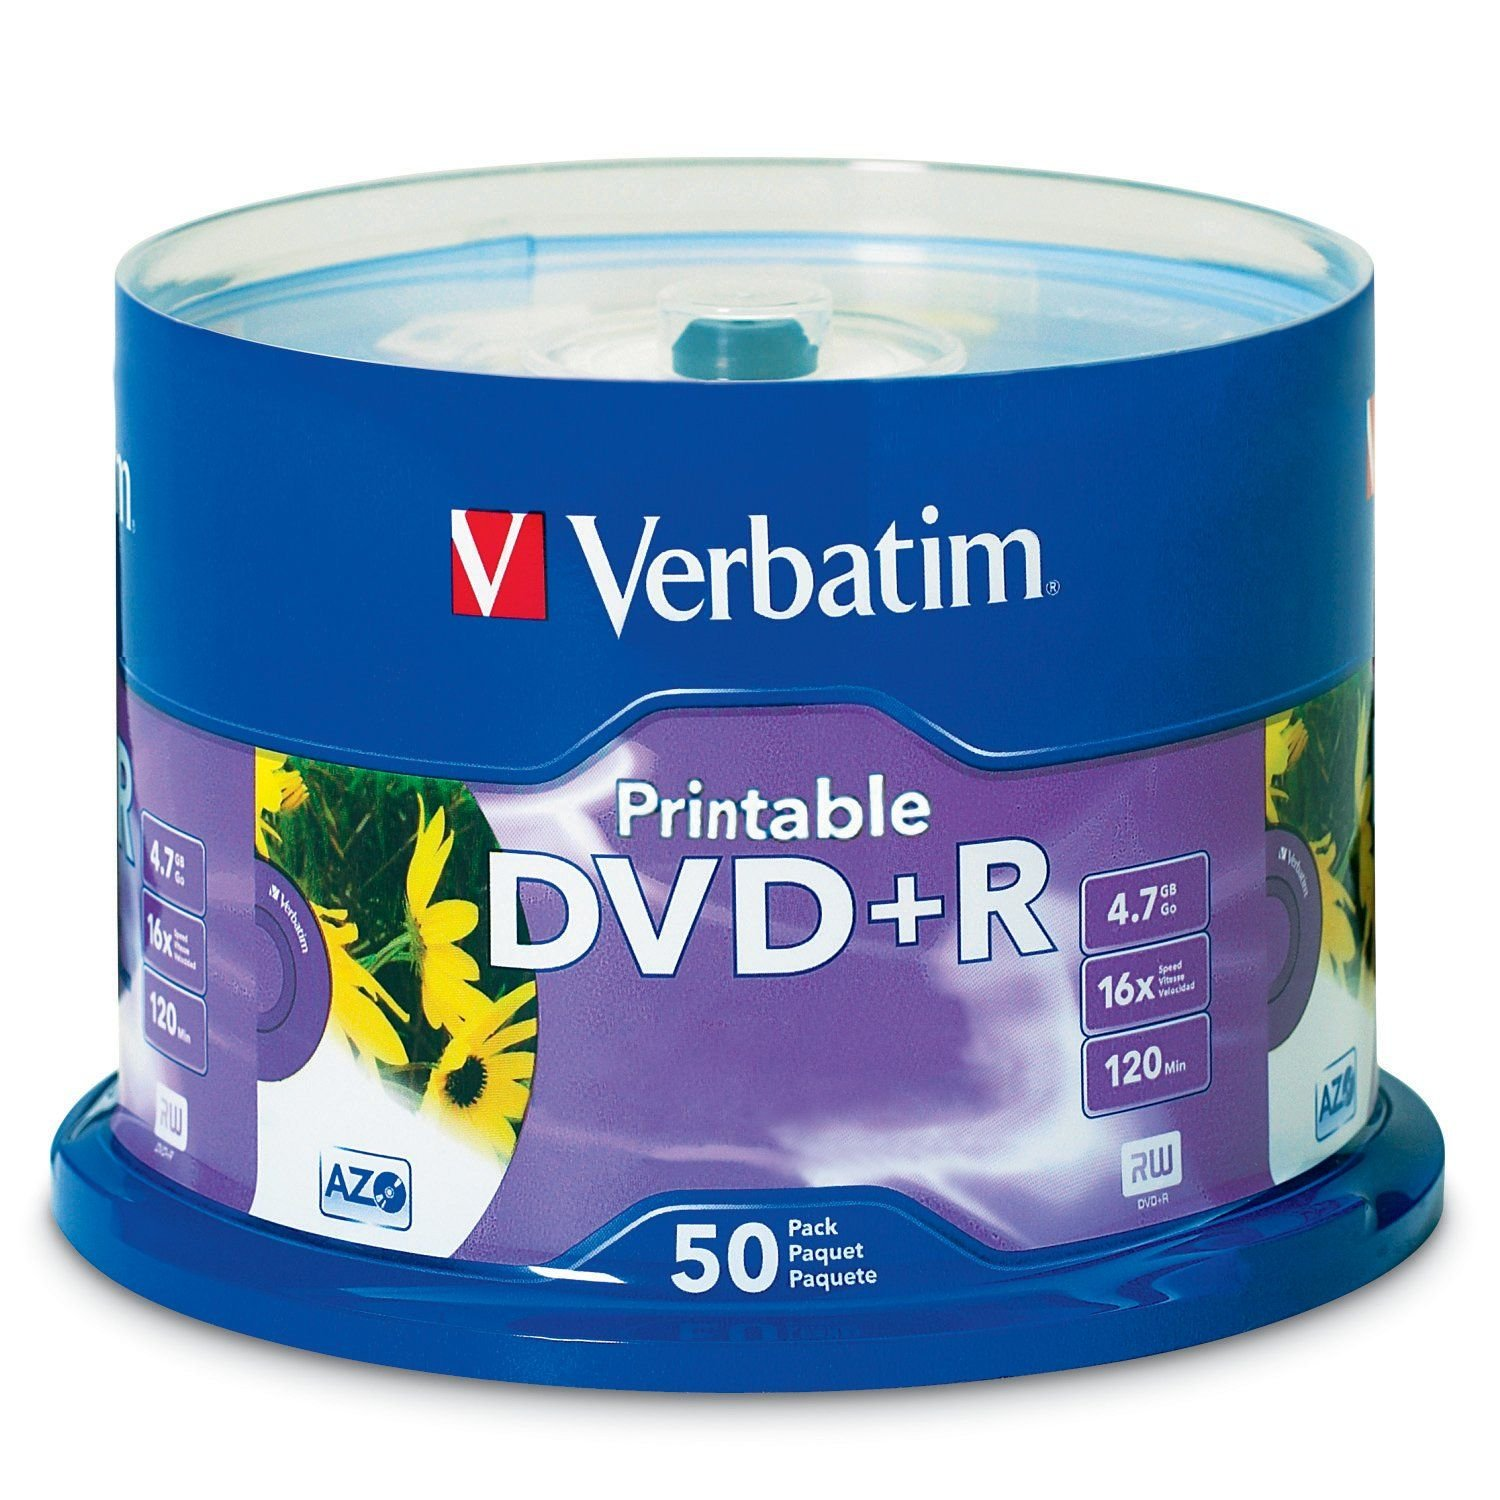 Verbatim 4.7GB up to 16x White Inkjet Printable Recordable Disc DVD+R, 50-Disc Spindle 95136